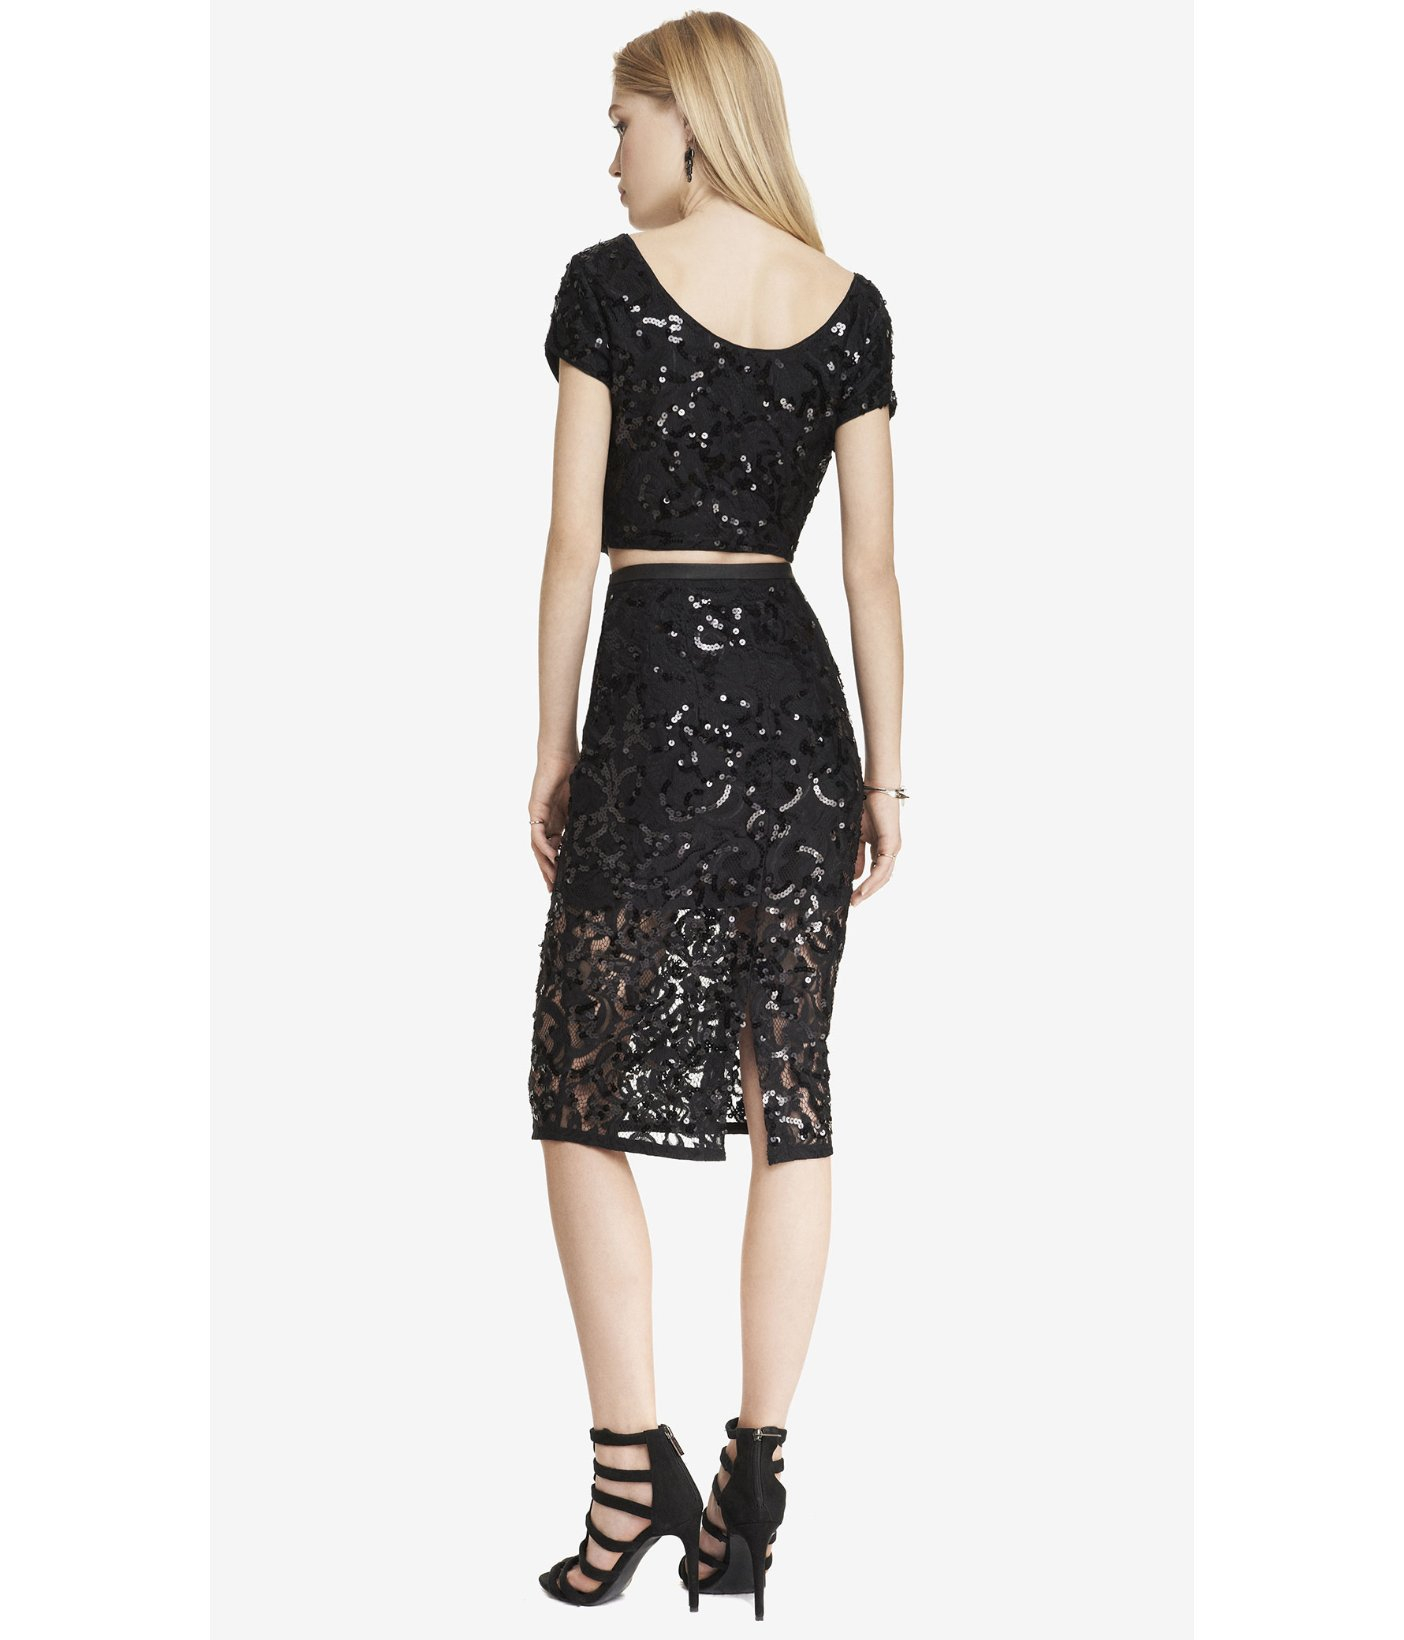 Find great deals on eBay for black sequin pencil skirt. Shop with confidence.